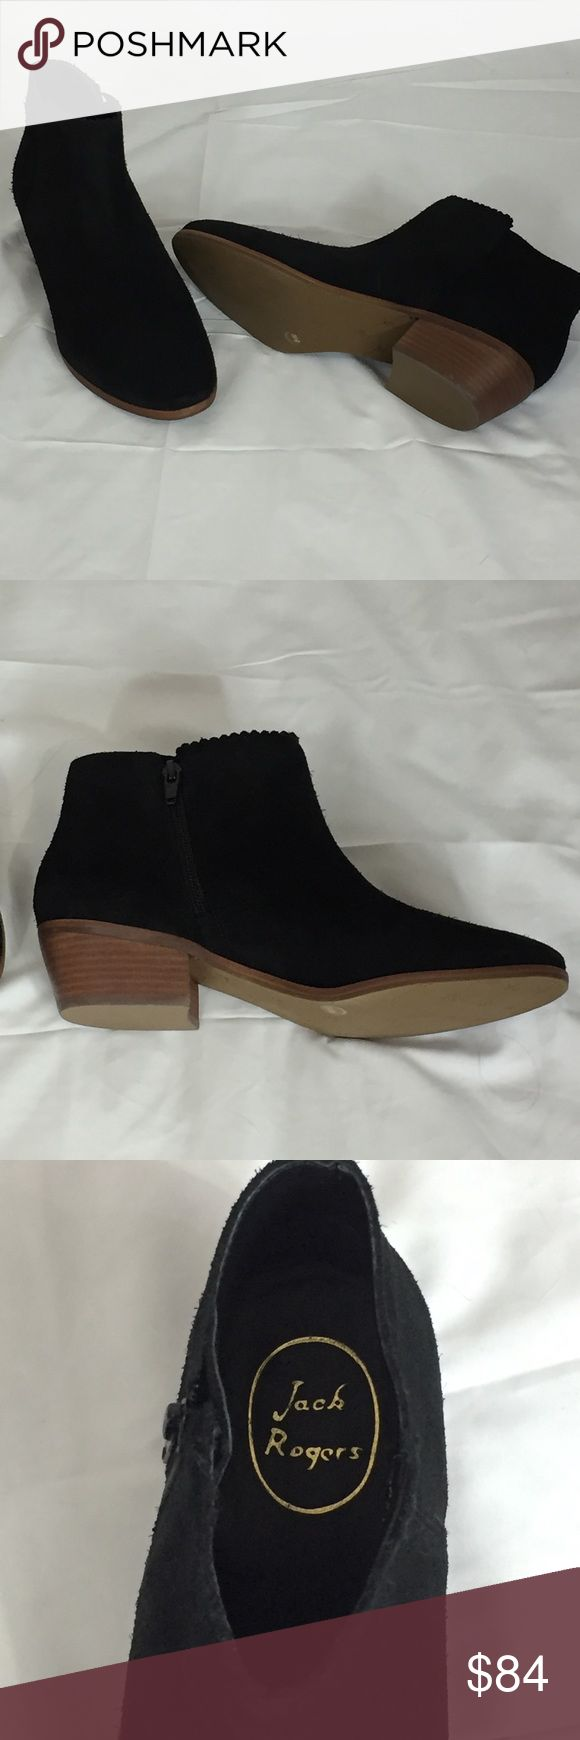 "Jack Rogers Suede Ankle Boots Size 8.5 Black sued with a patterned trim on the front top Inside zipper 1 3/4"" heel NWT but no box Jack Rogers Shoes Ankle Boots & Booties"